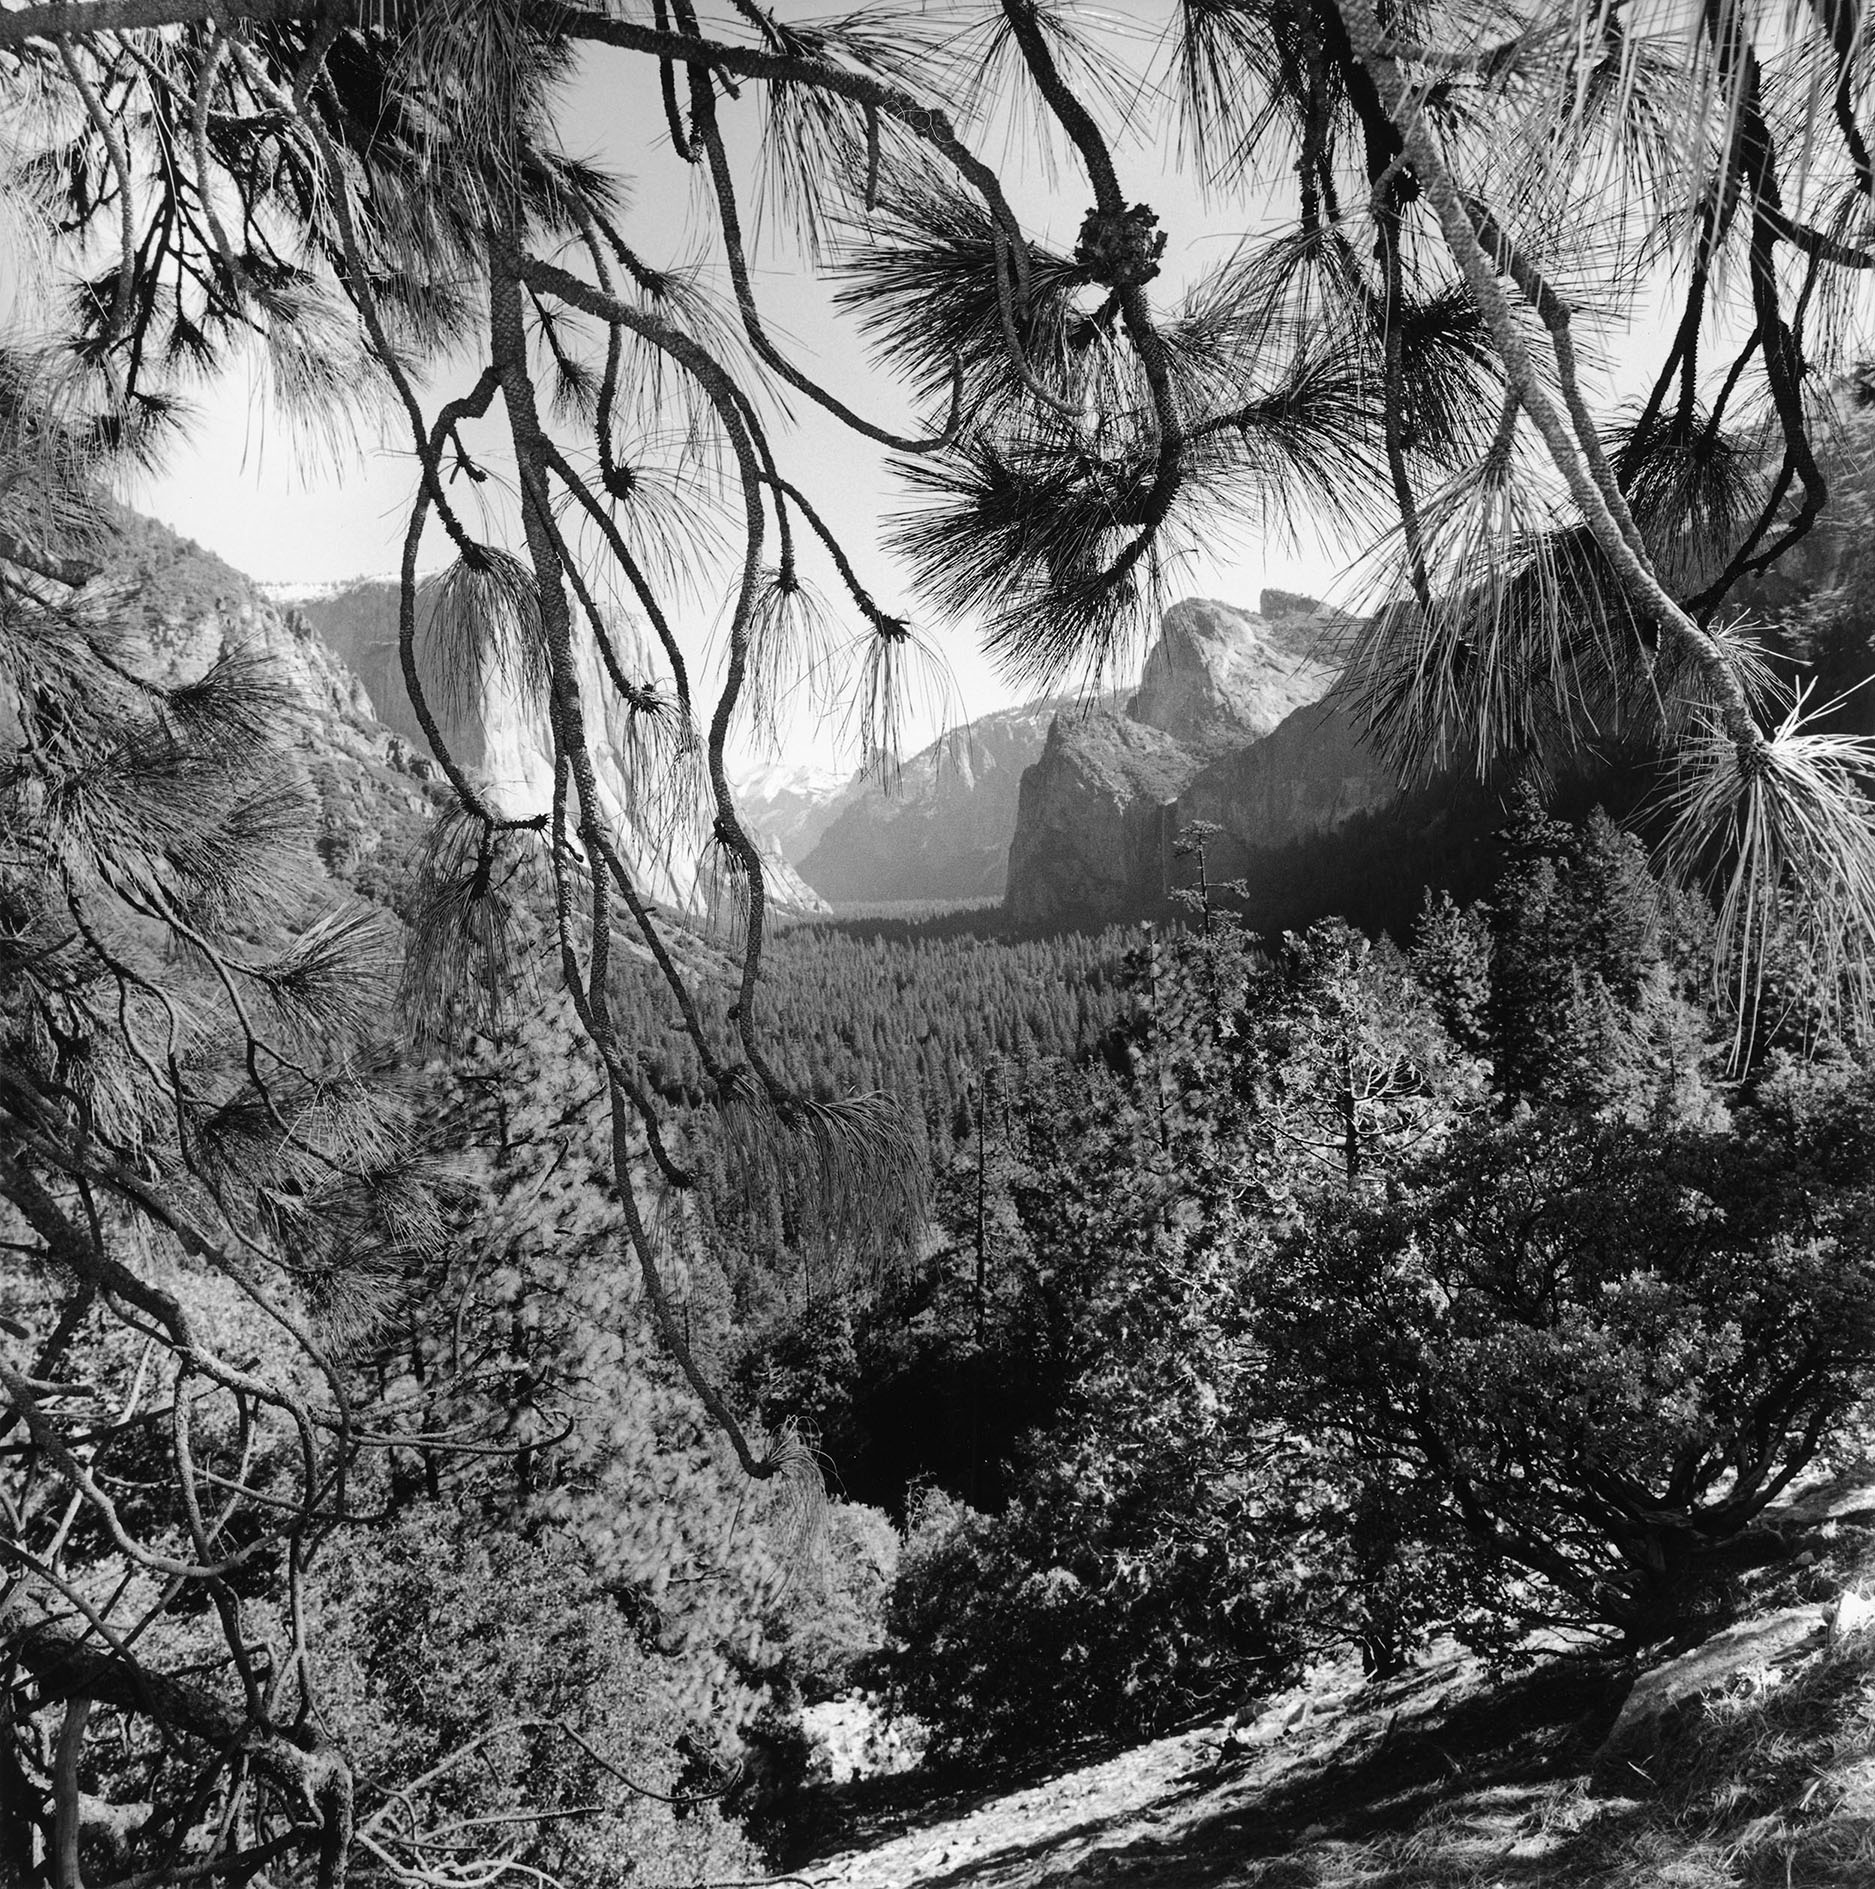 Yosemite National Park, California, 2004. Gelatin silver print. © Lee Friedlander, Courtesy Fraenkel Gallery, San Francisco